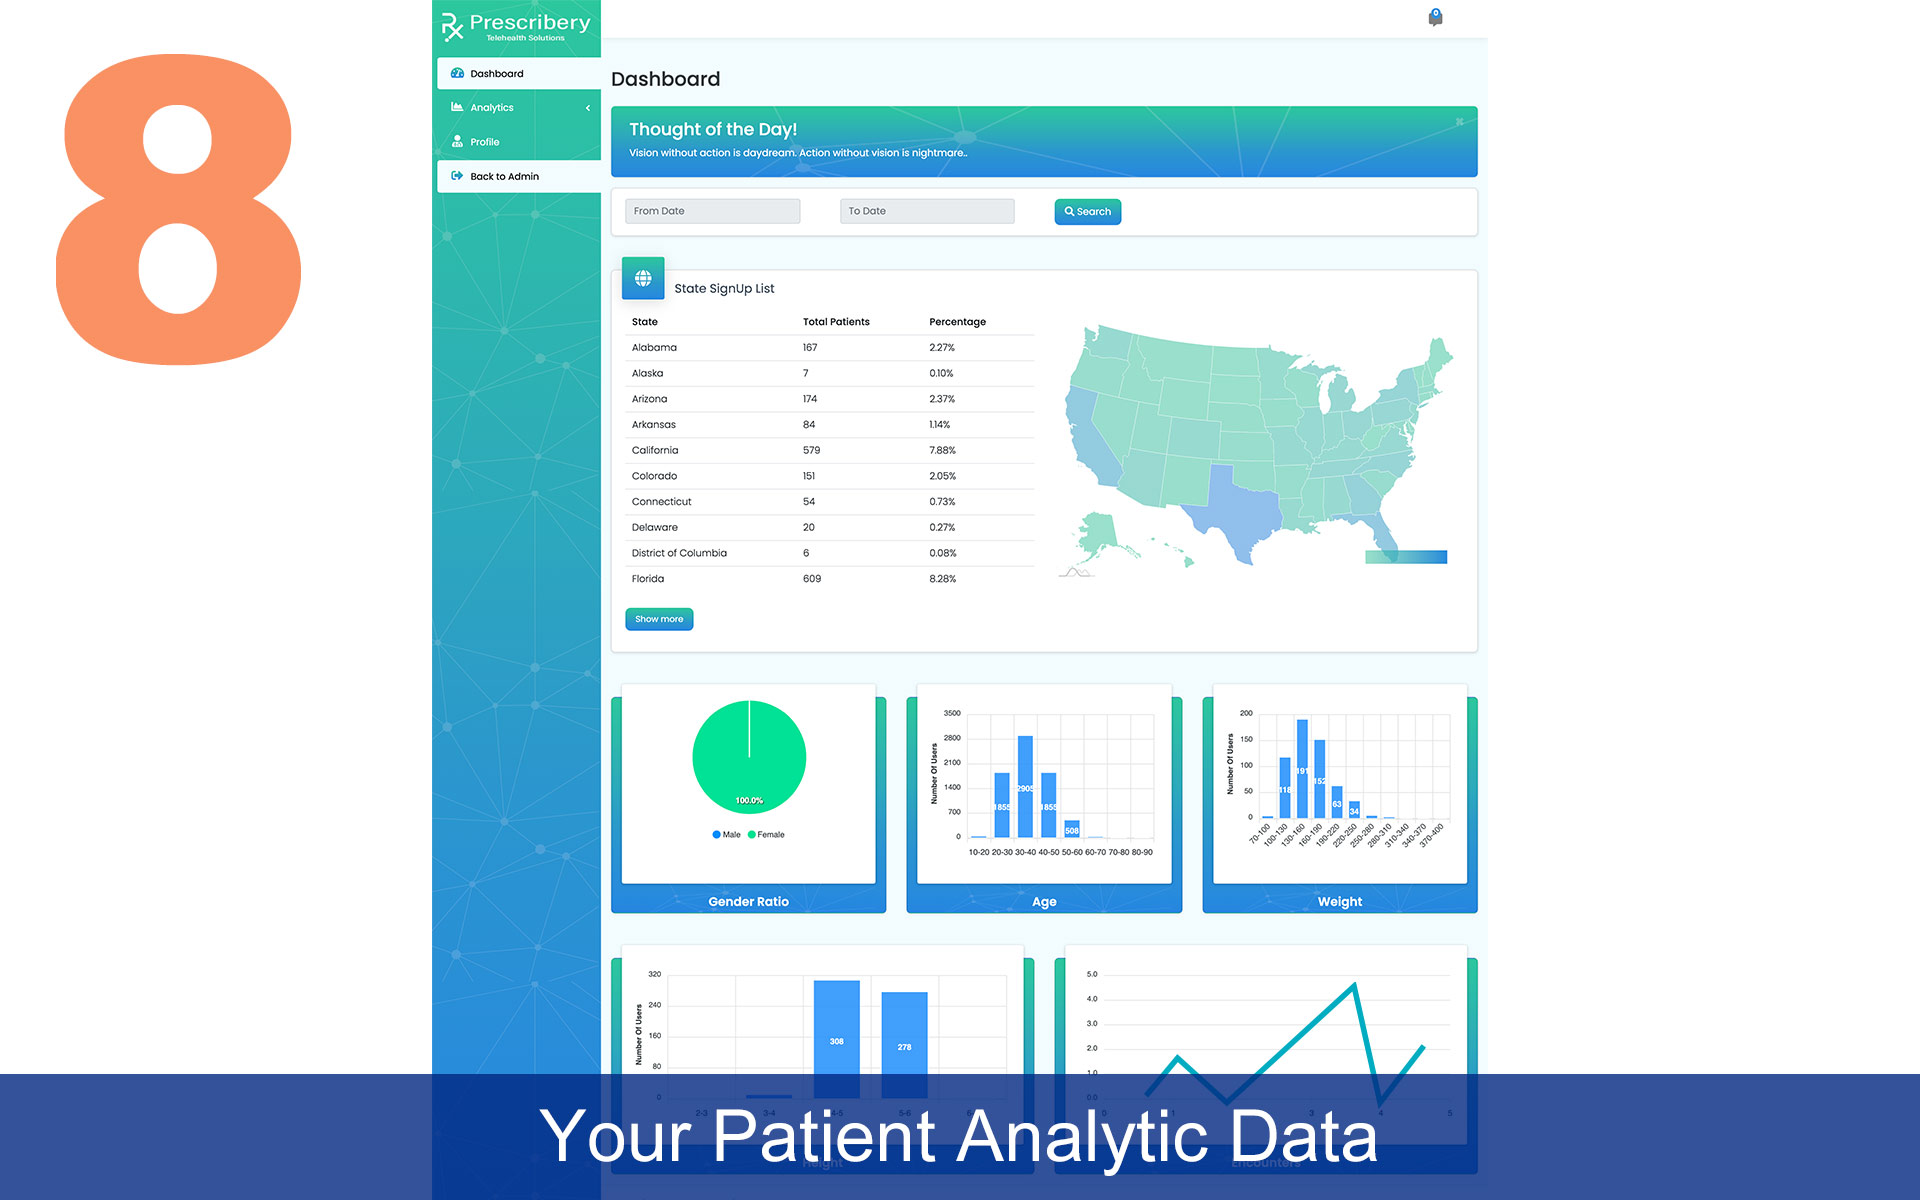 Your Patient Analytic Data